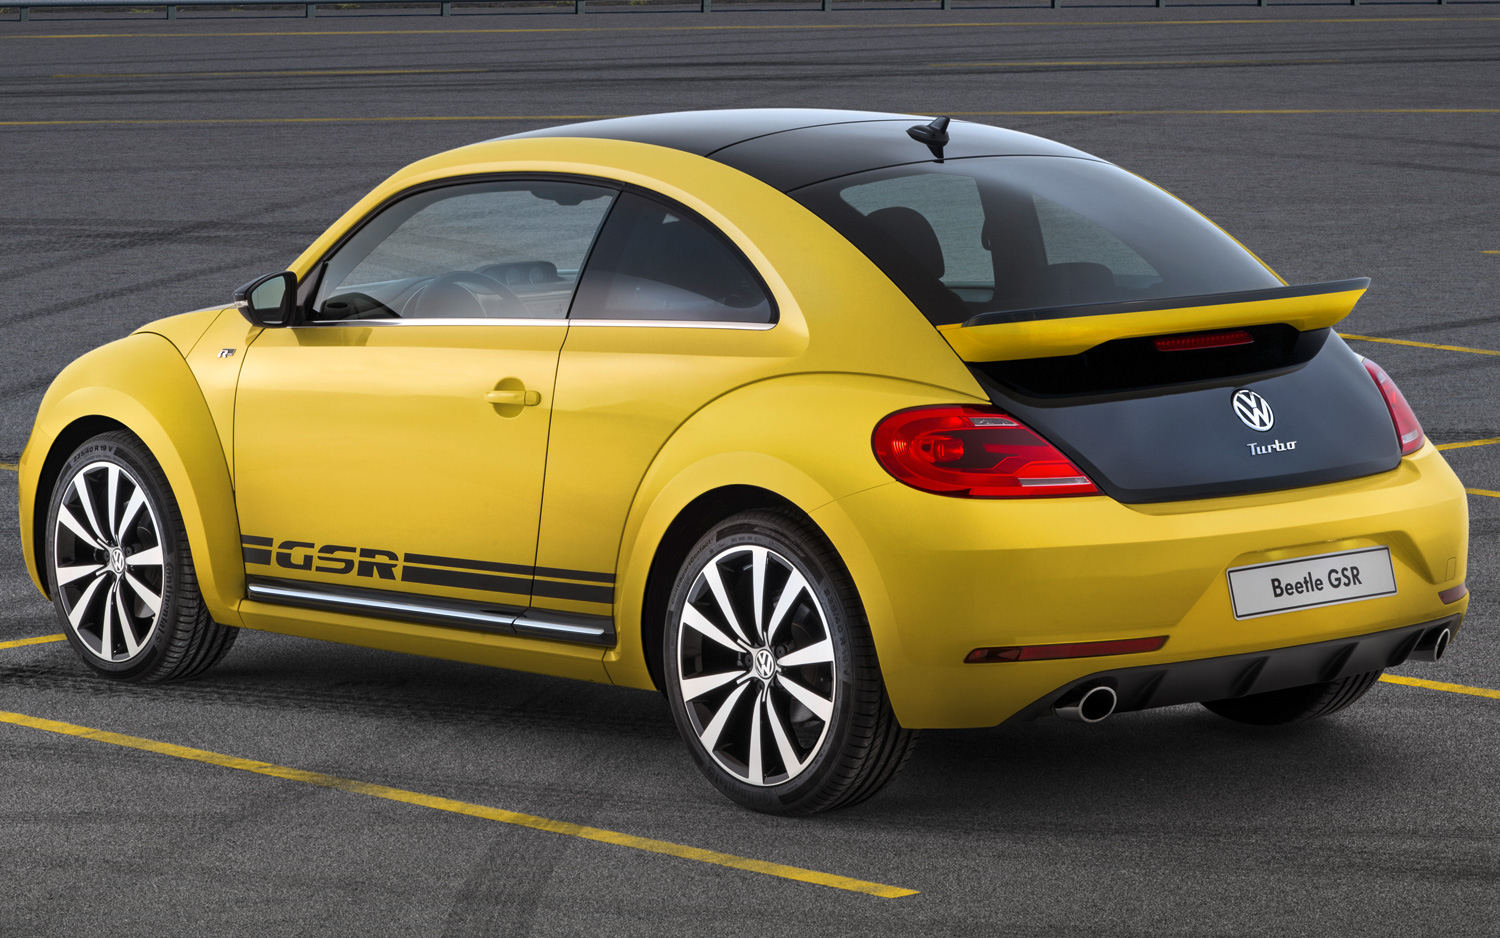 2013 volkswagen beetle gsr. Black Bedroom Furniture Sets. Home Design Ideas